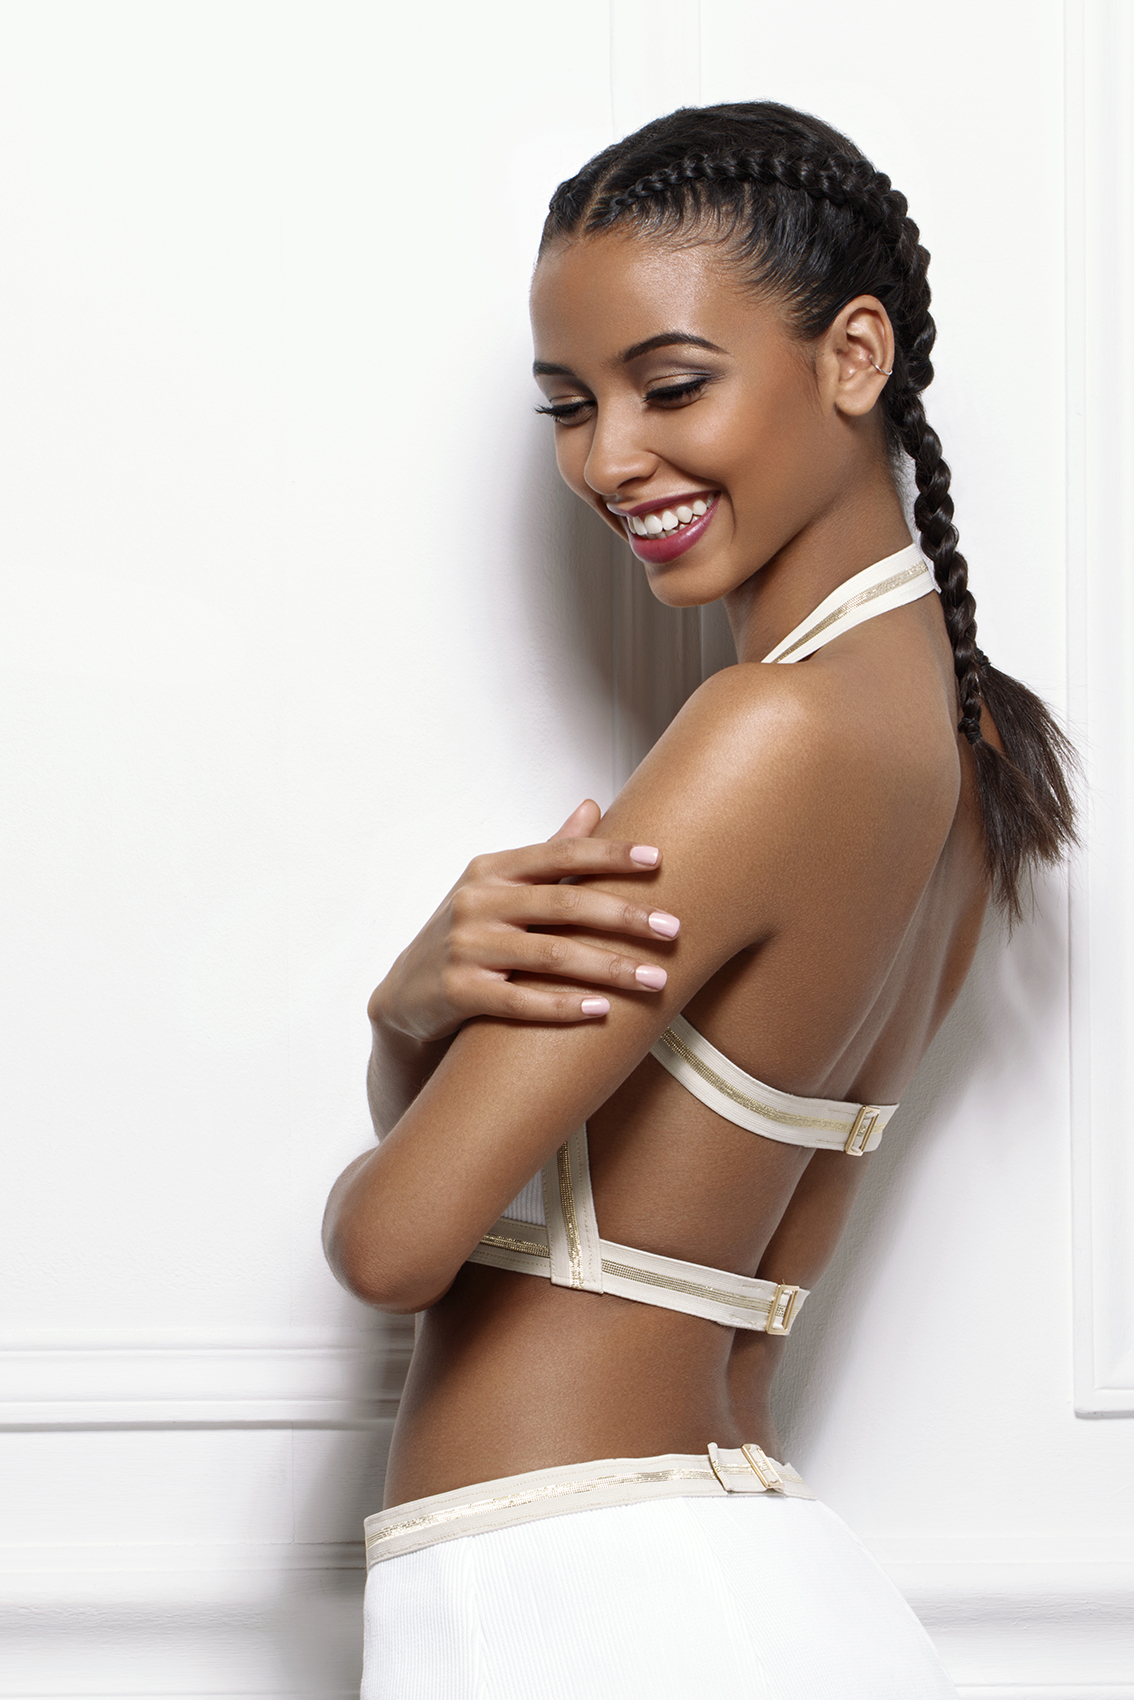 Fotos Flora Coquerel nude photos 2019